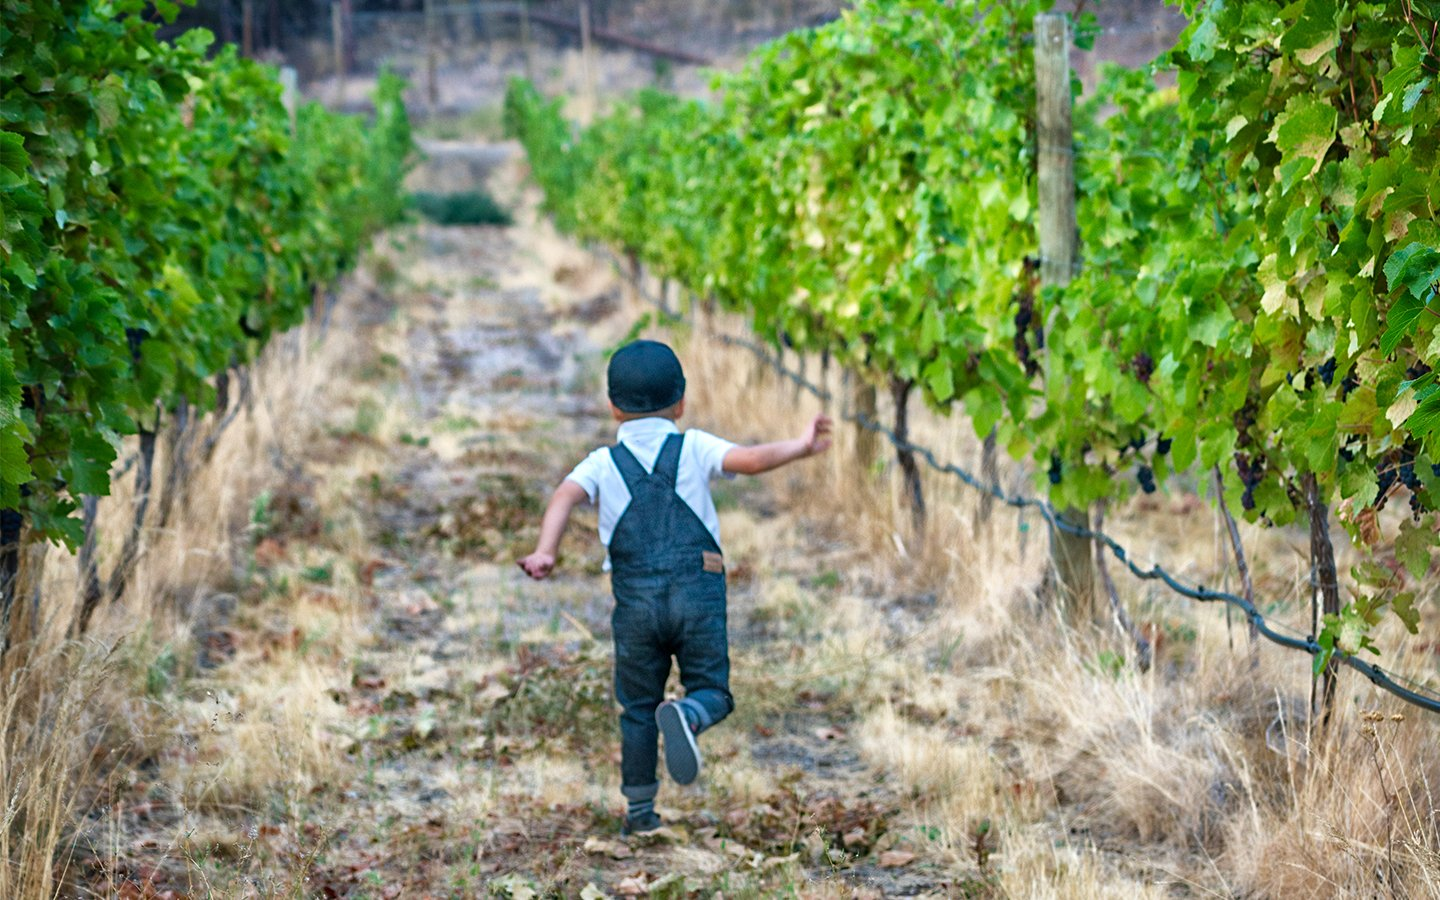 https://spatulamedia.ca/wp-content/uploads/2019/05/hugh-running-through-the-niche-vineyard.jpg